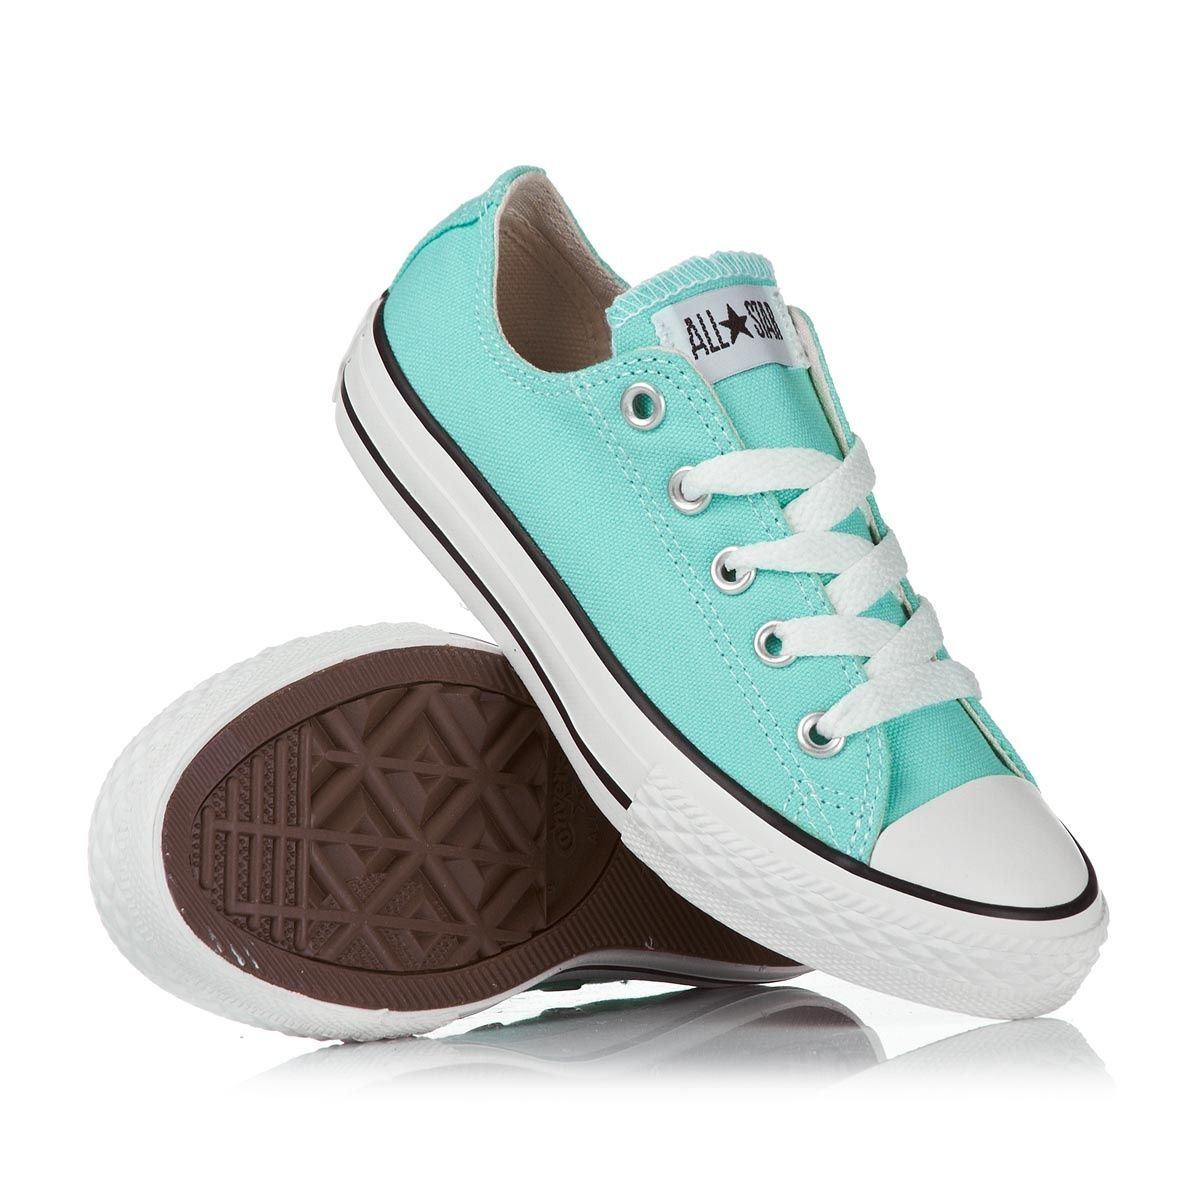 converse all star shoes for girls